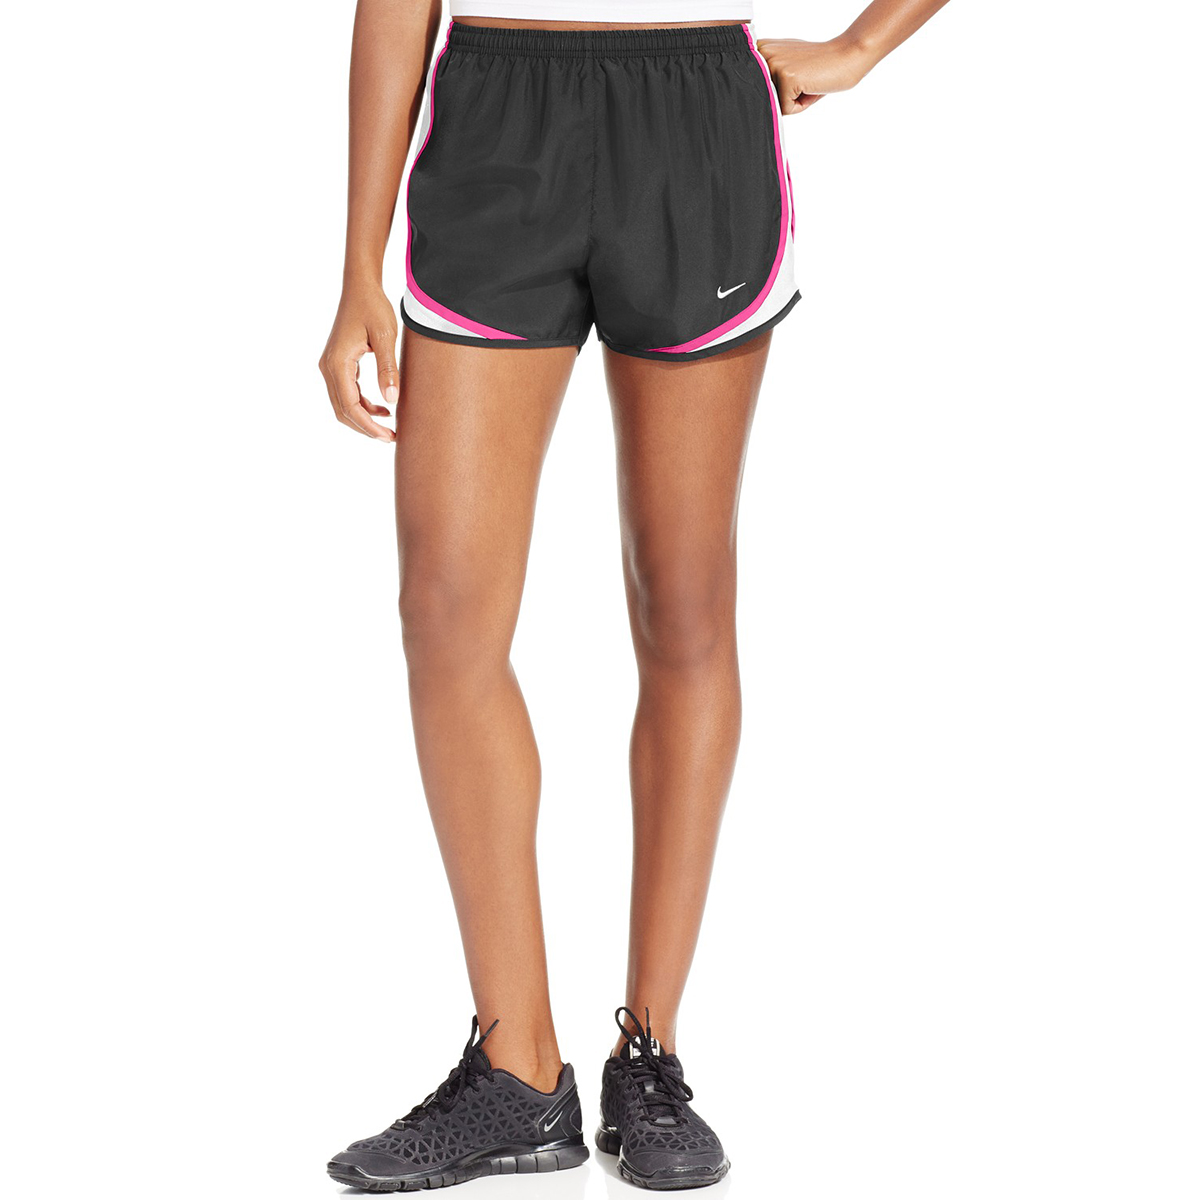 Macy's Easter Sale is Here and These Bestselling Nike Shorts Are Our Top Pick